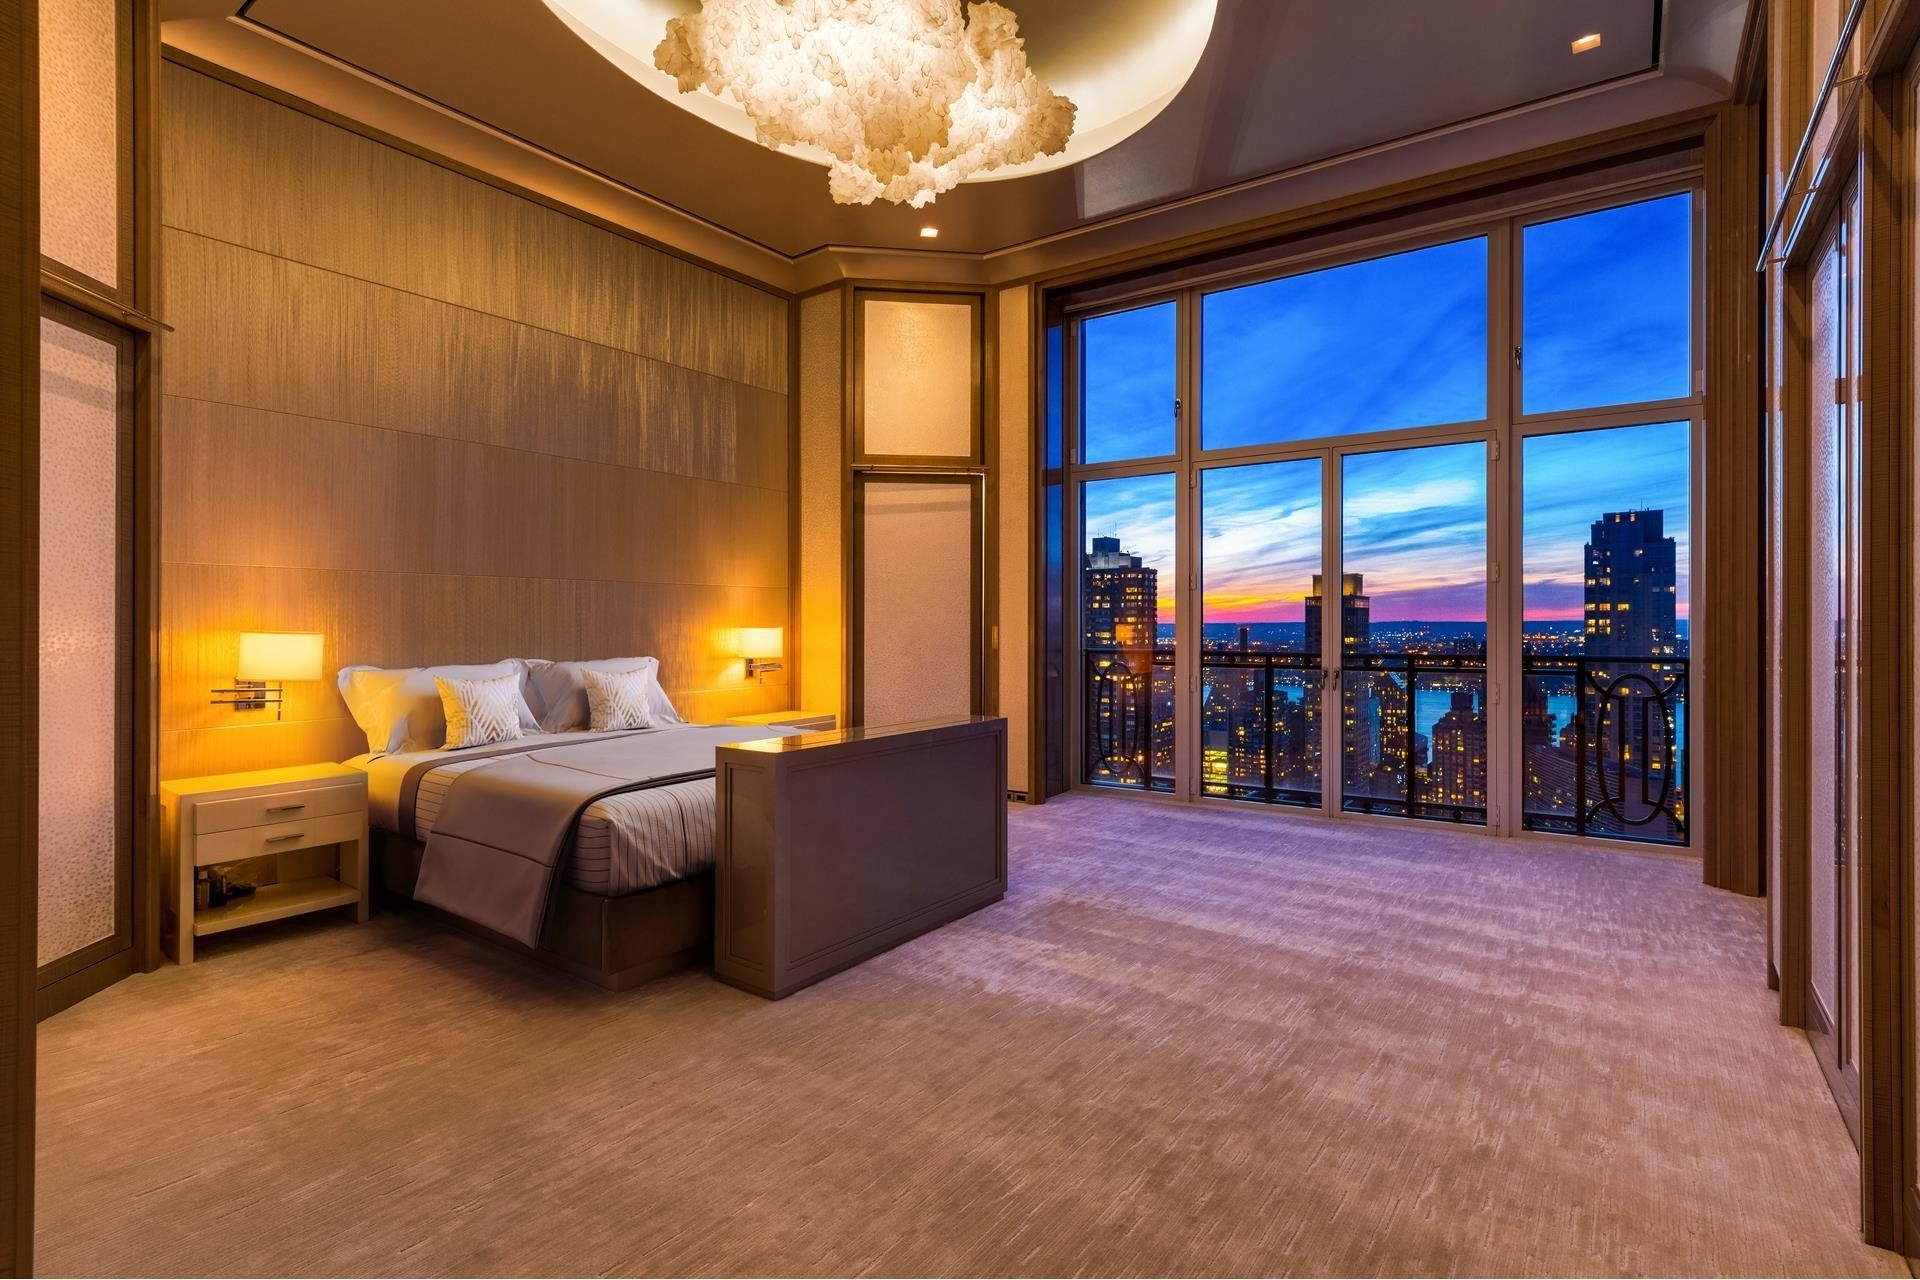 5. Condominiums для того Продажа на 15 Cpw, 15 CENTRAL PARK W, PH41 Lincoln Square, New York, NY 10023